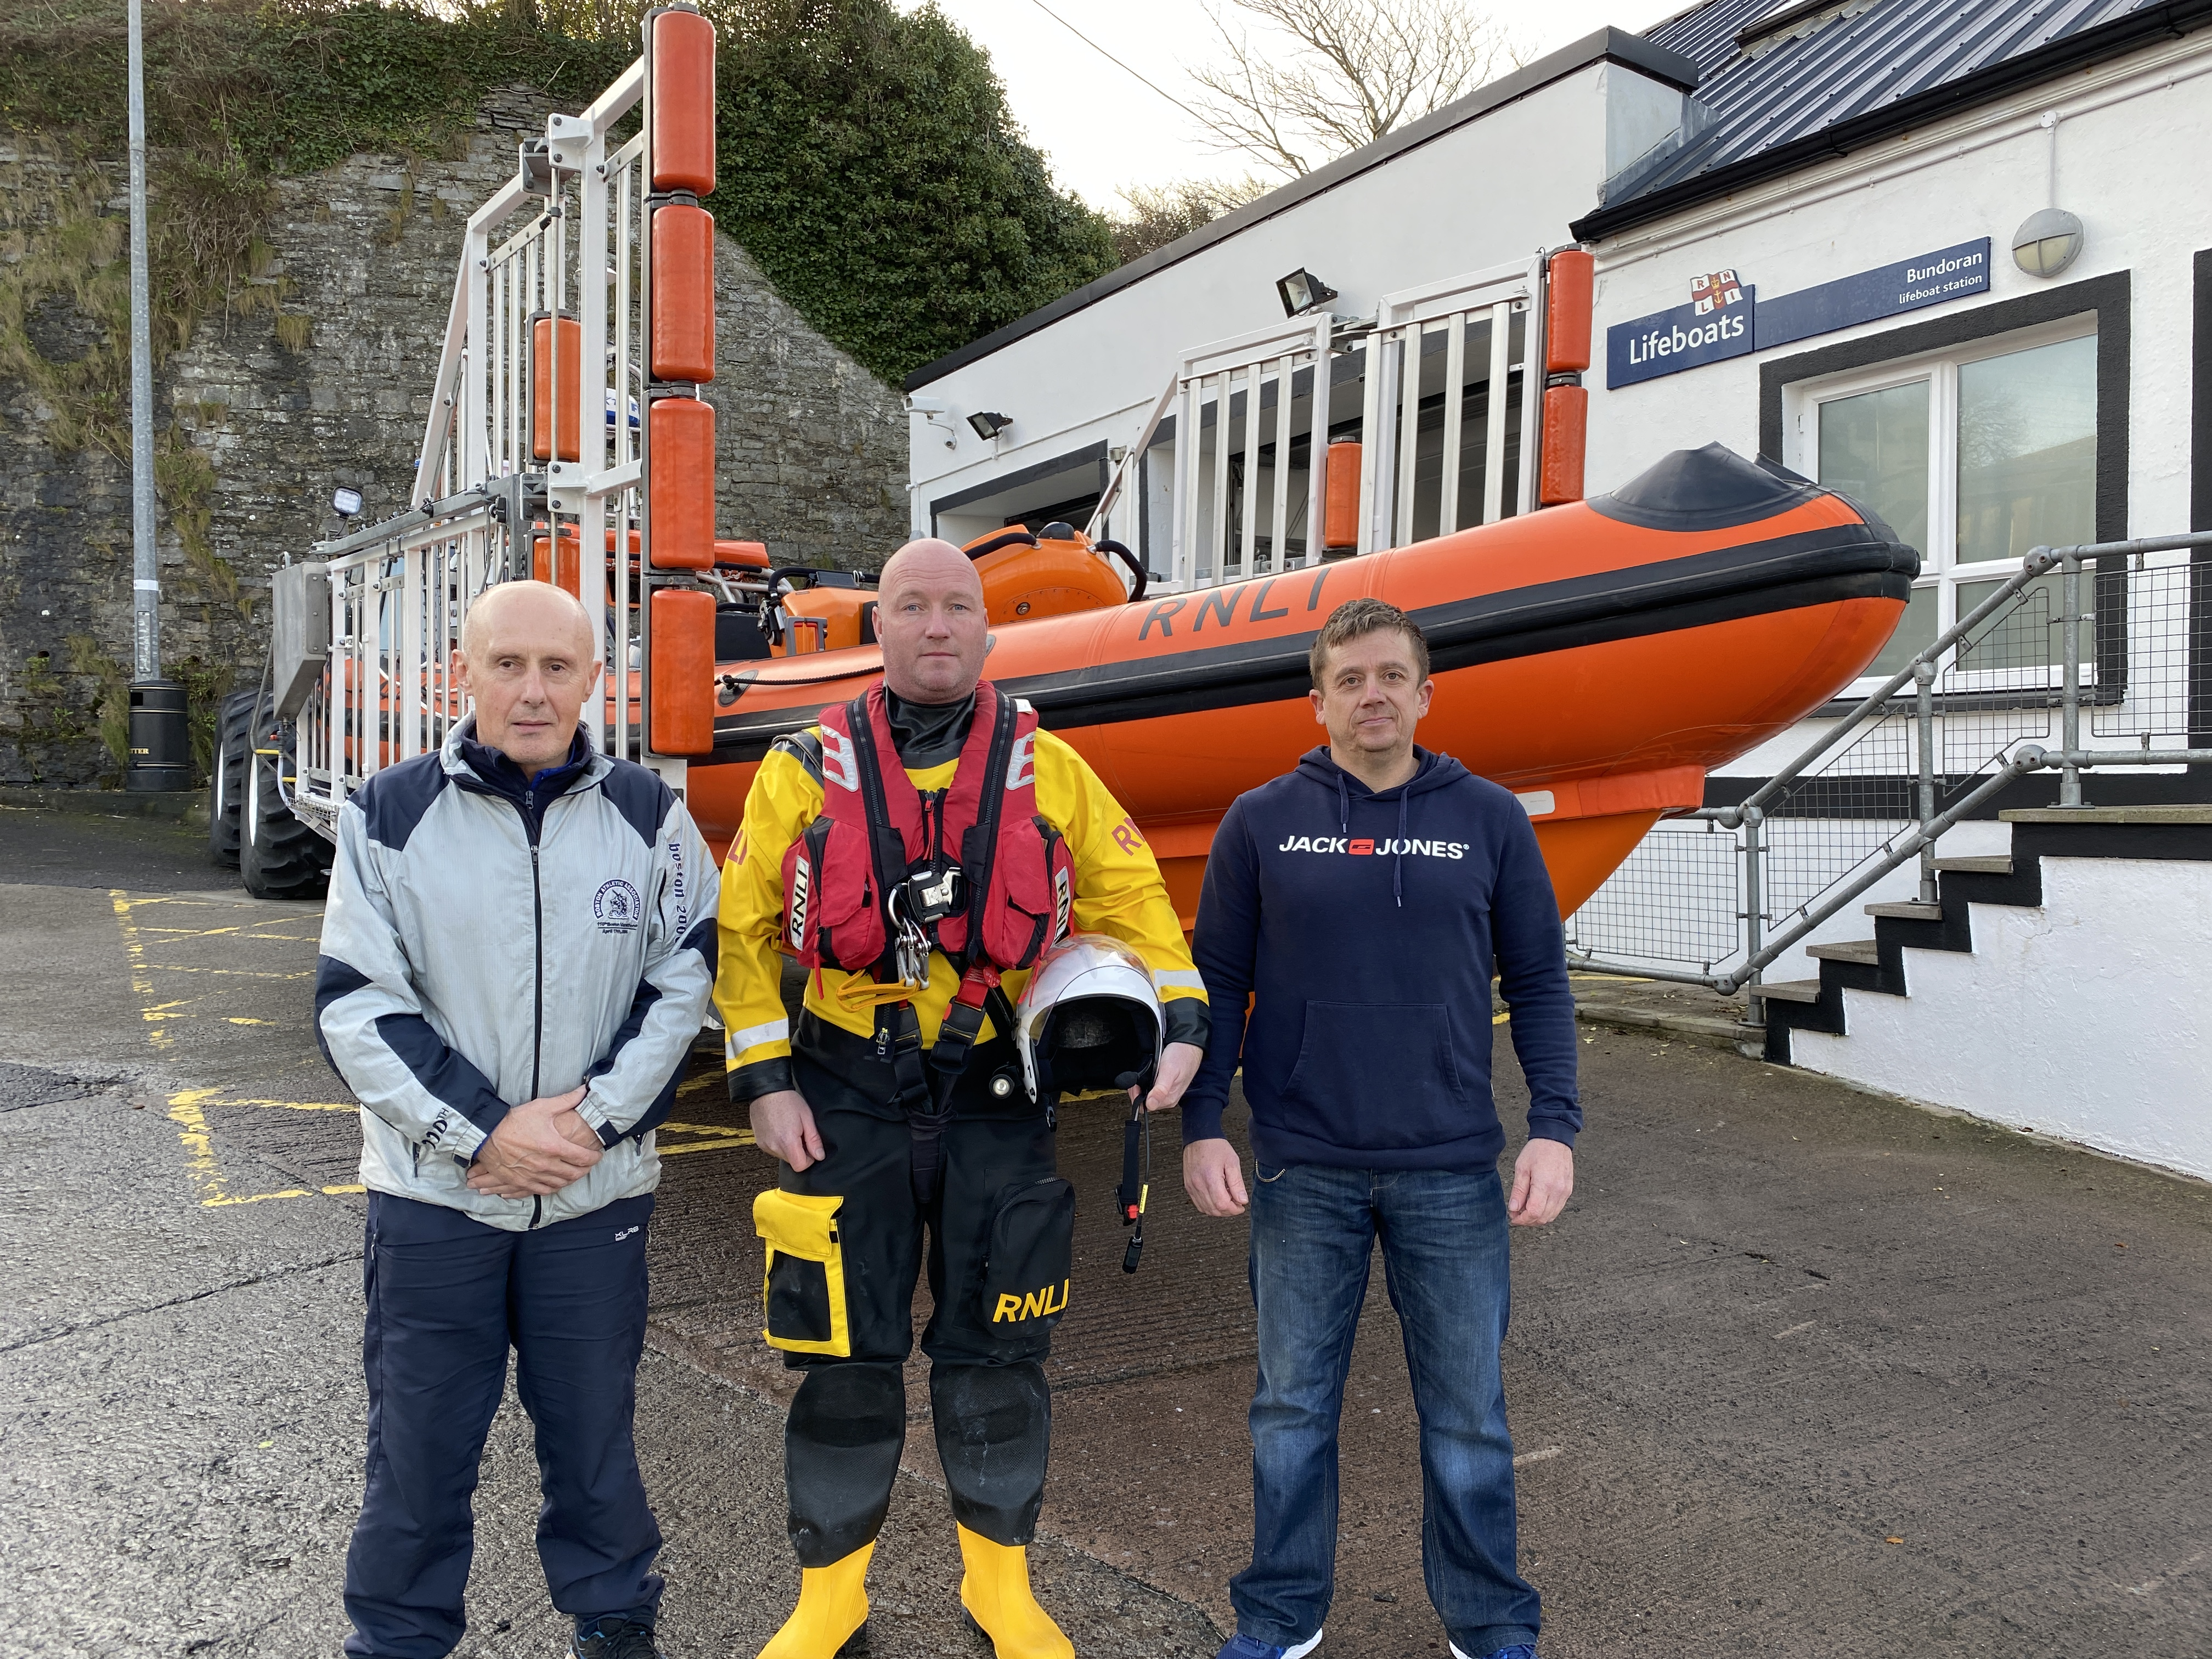 Pictured are Tony Cummins, Daimon Fergus and Damien McNamara who were on the crew the day of the rescue in 1998